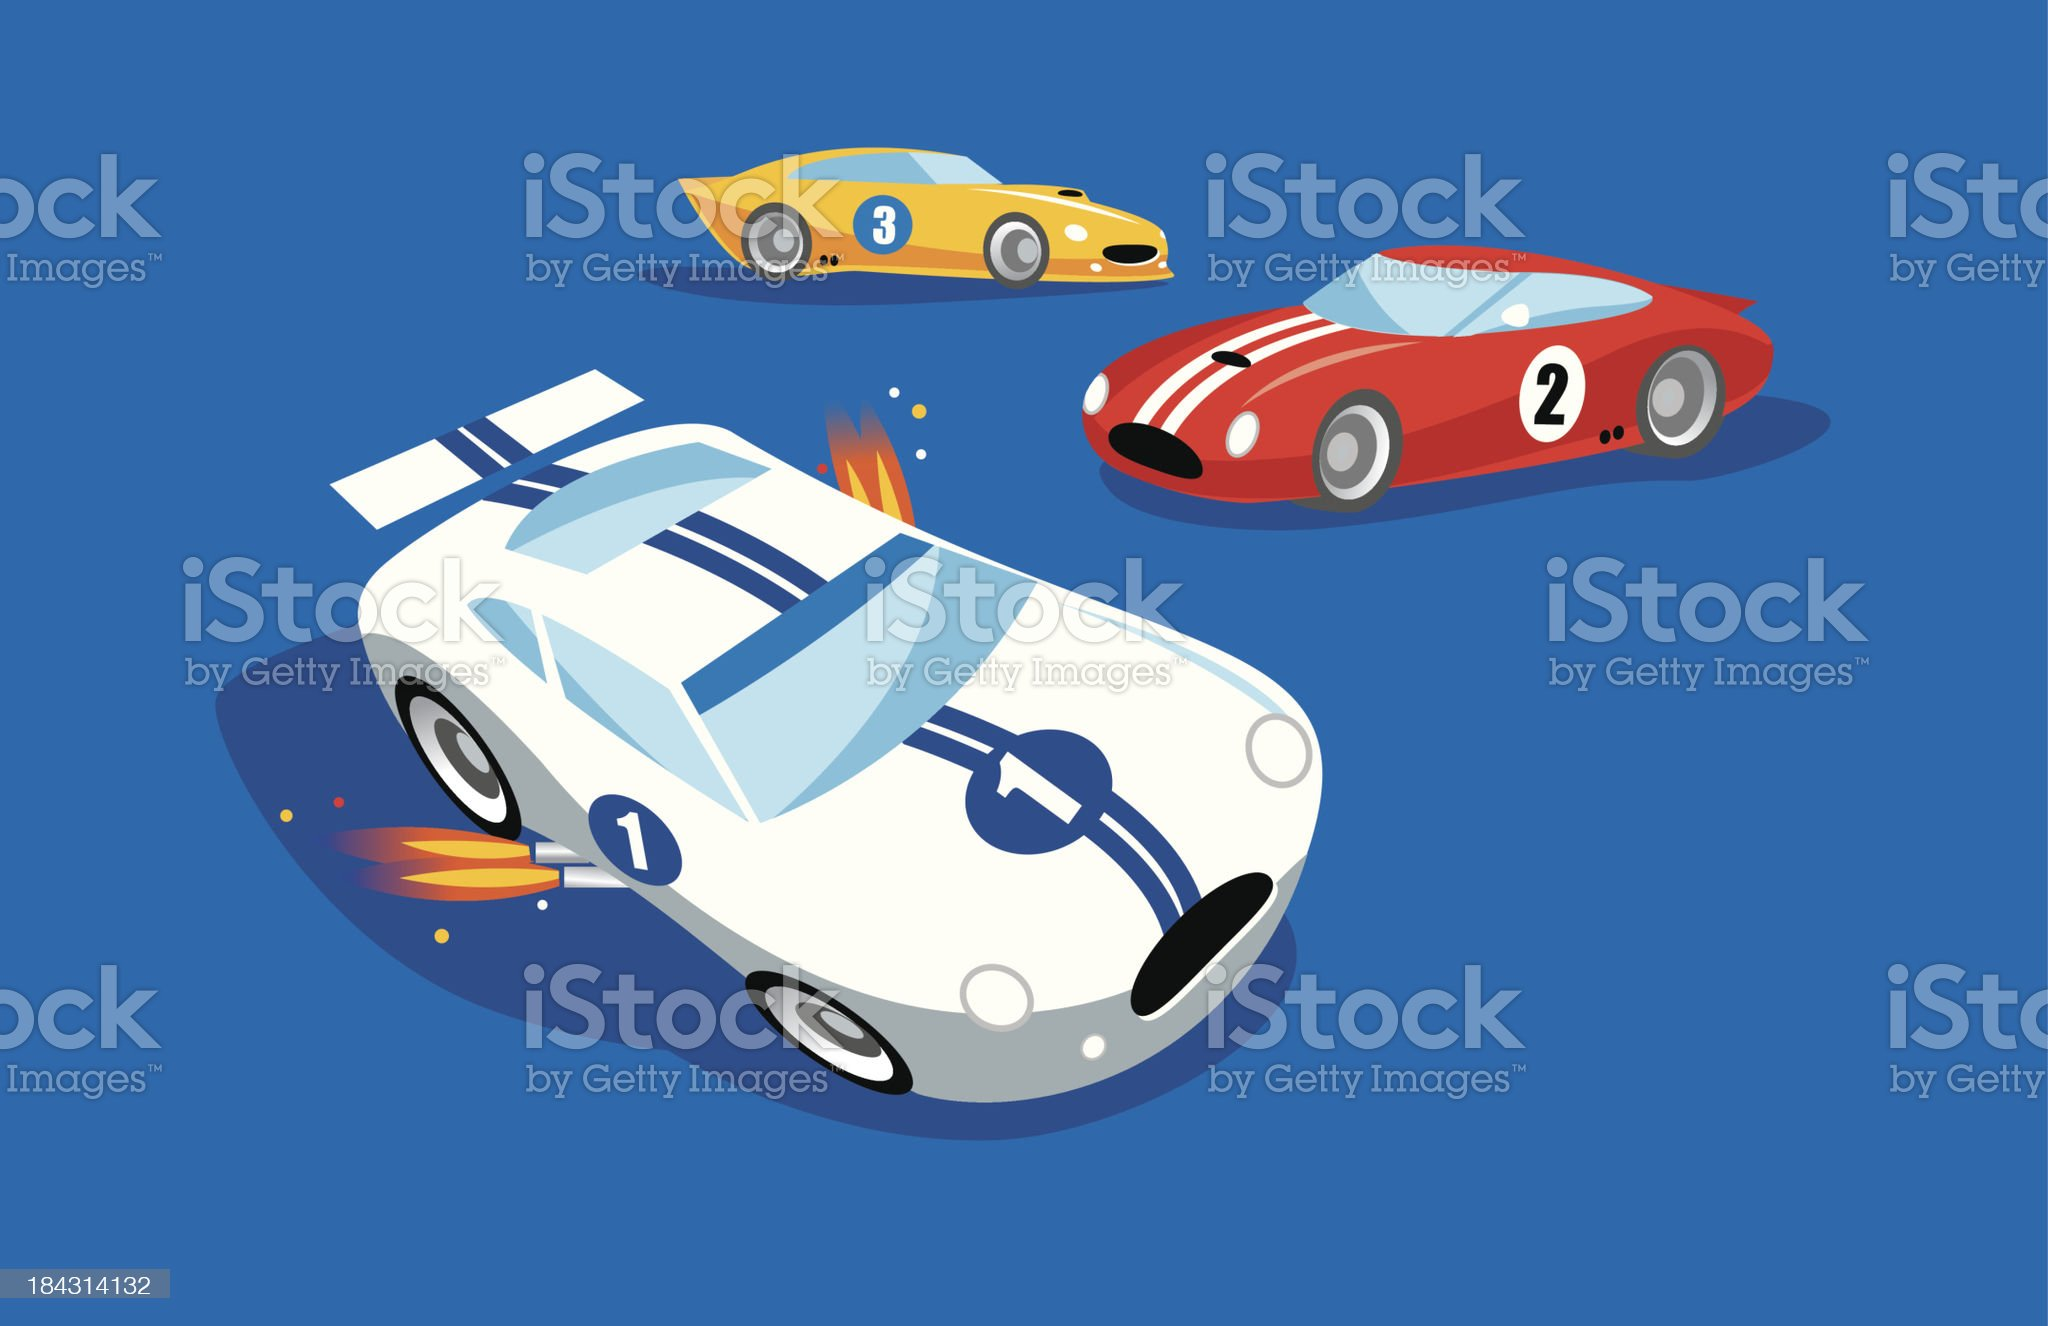 Race Cars royalty-free stock vector art